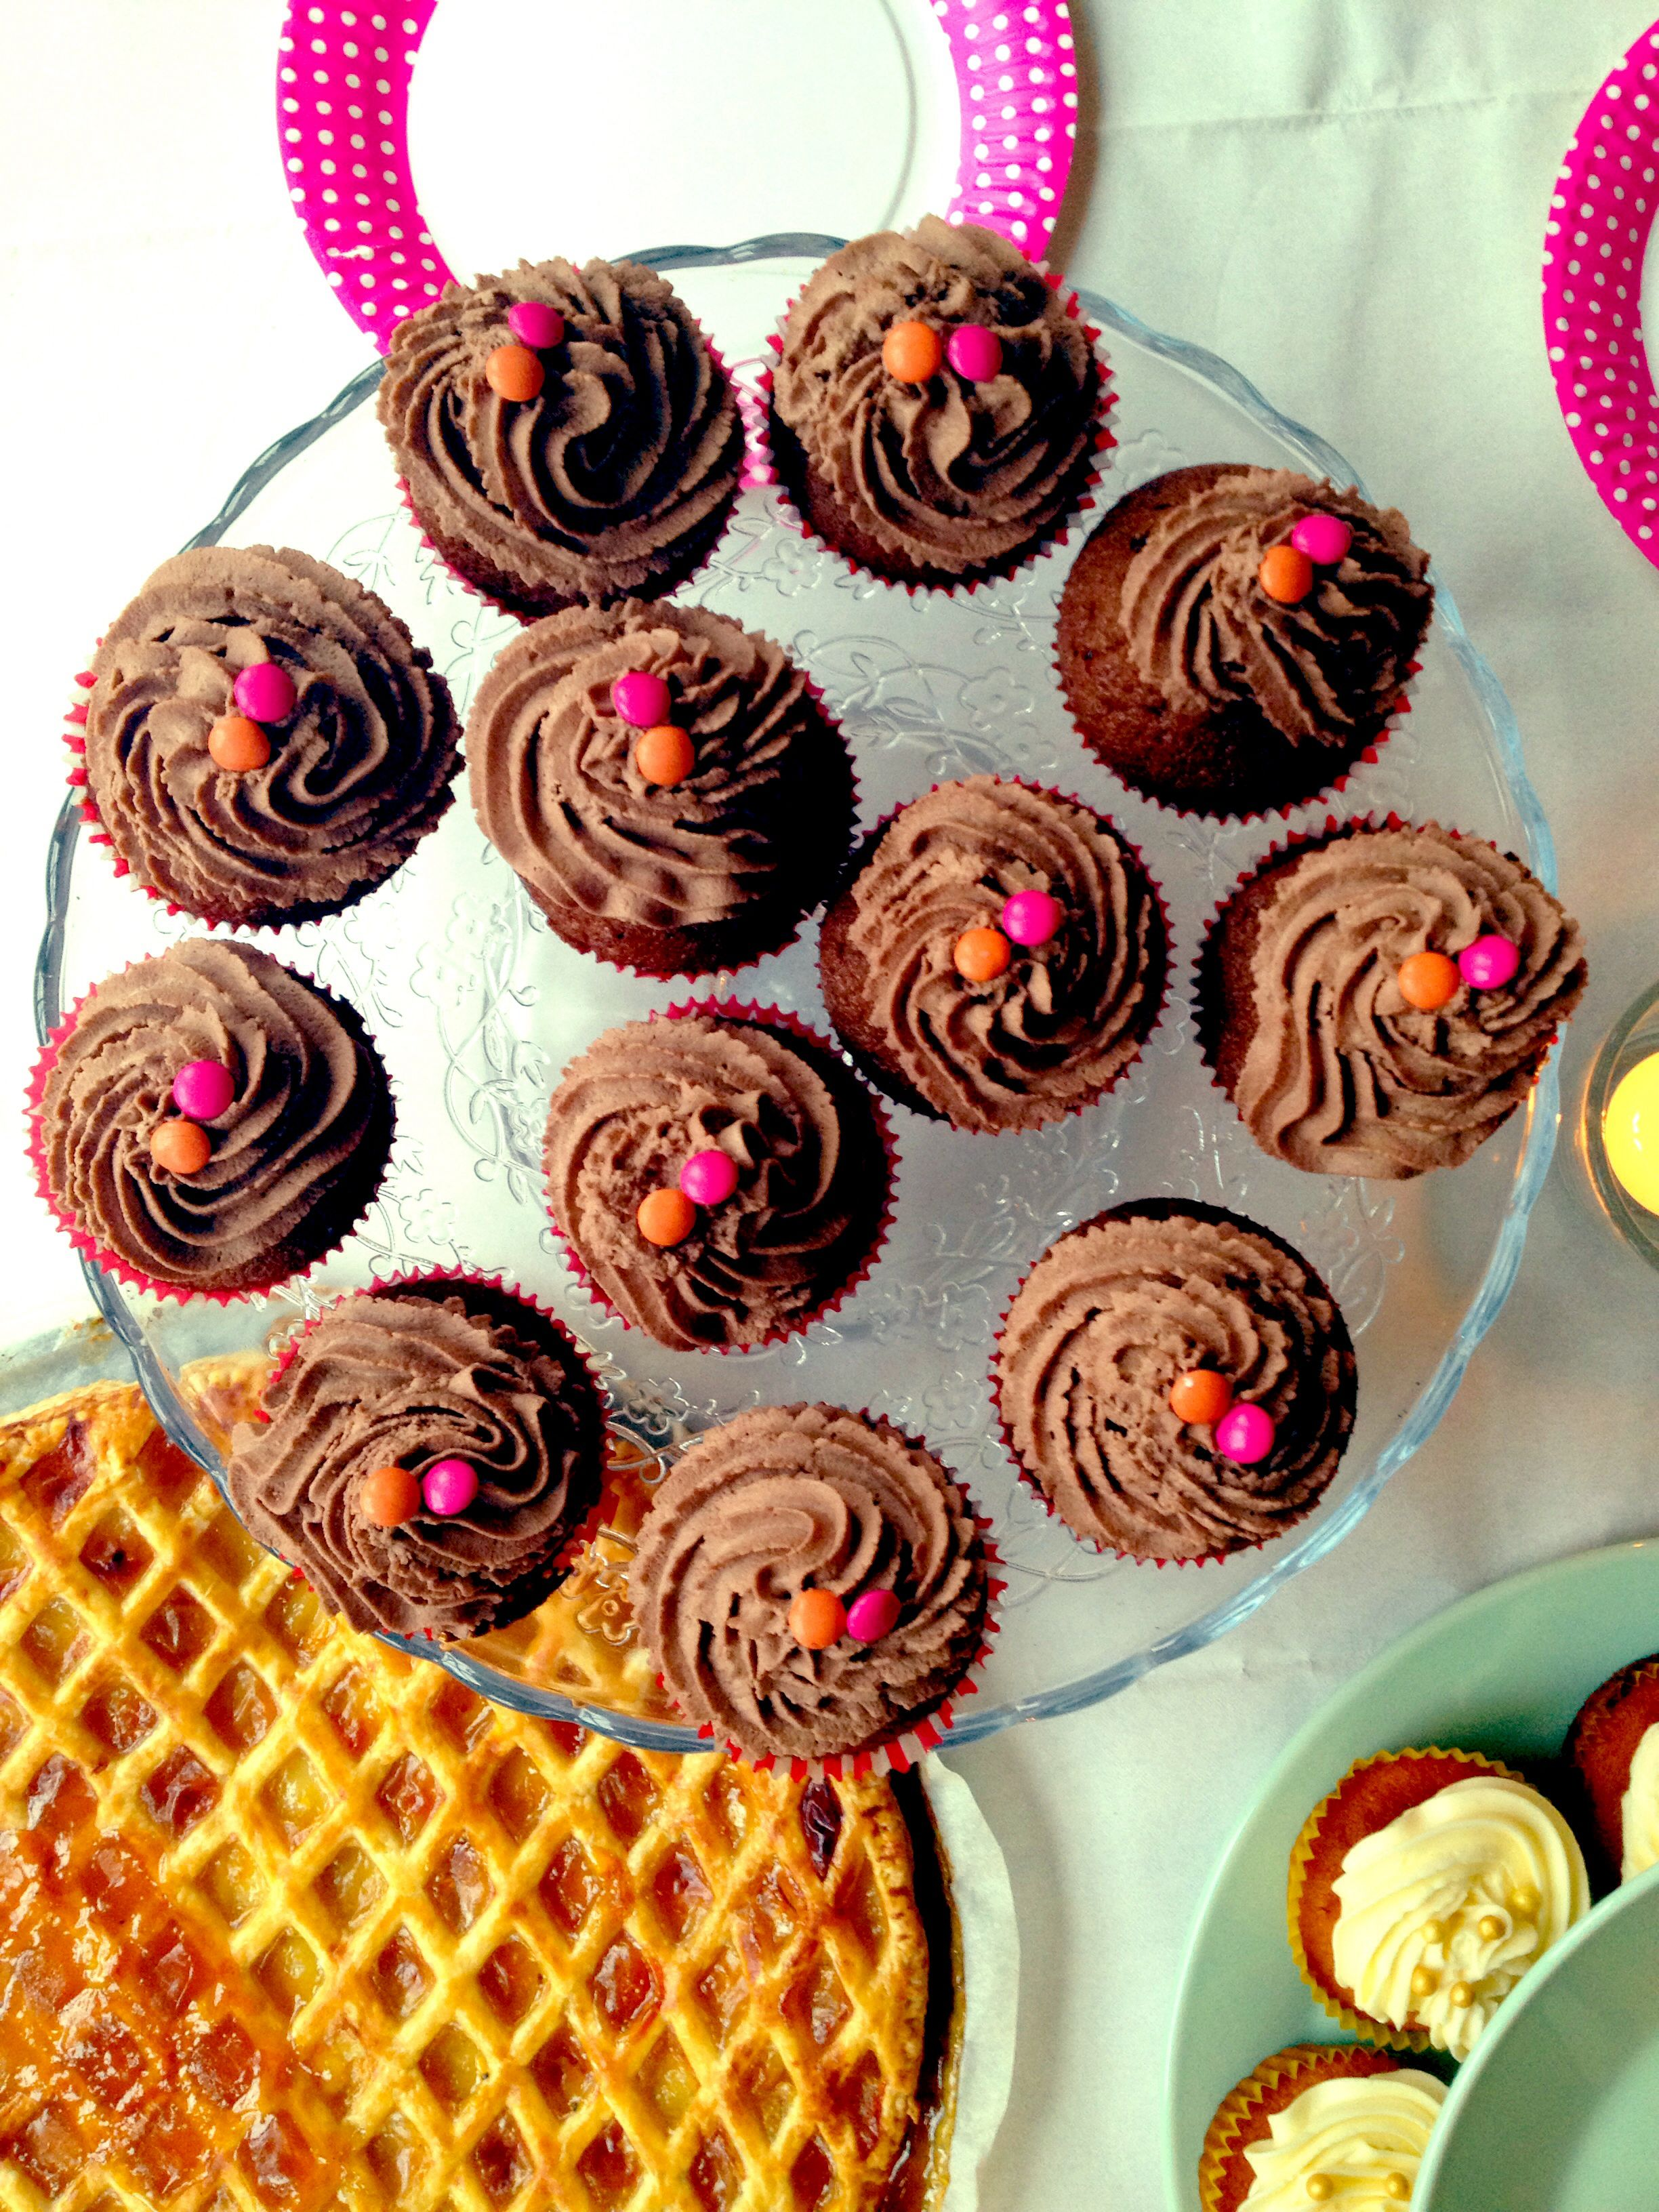 Sweets for my sweeties #cupcakes